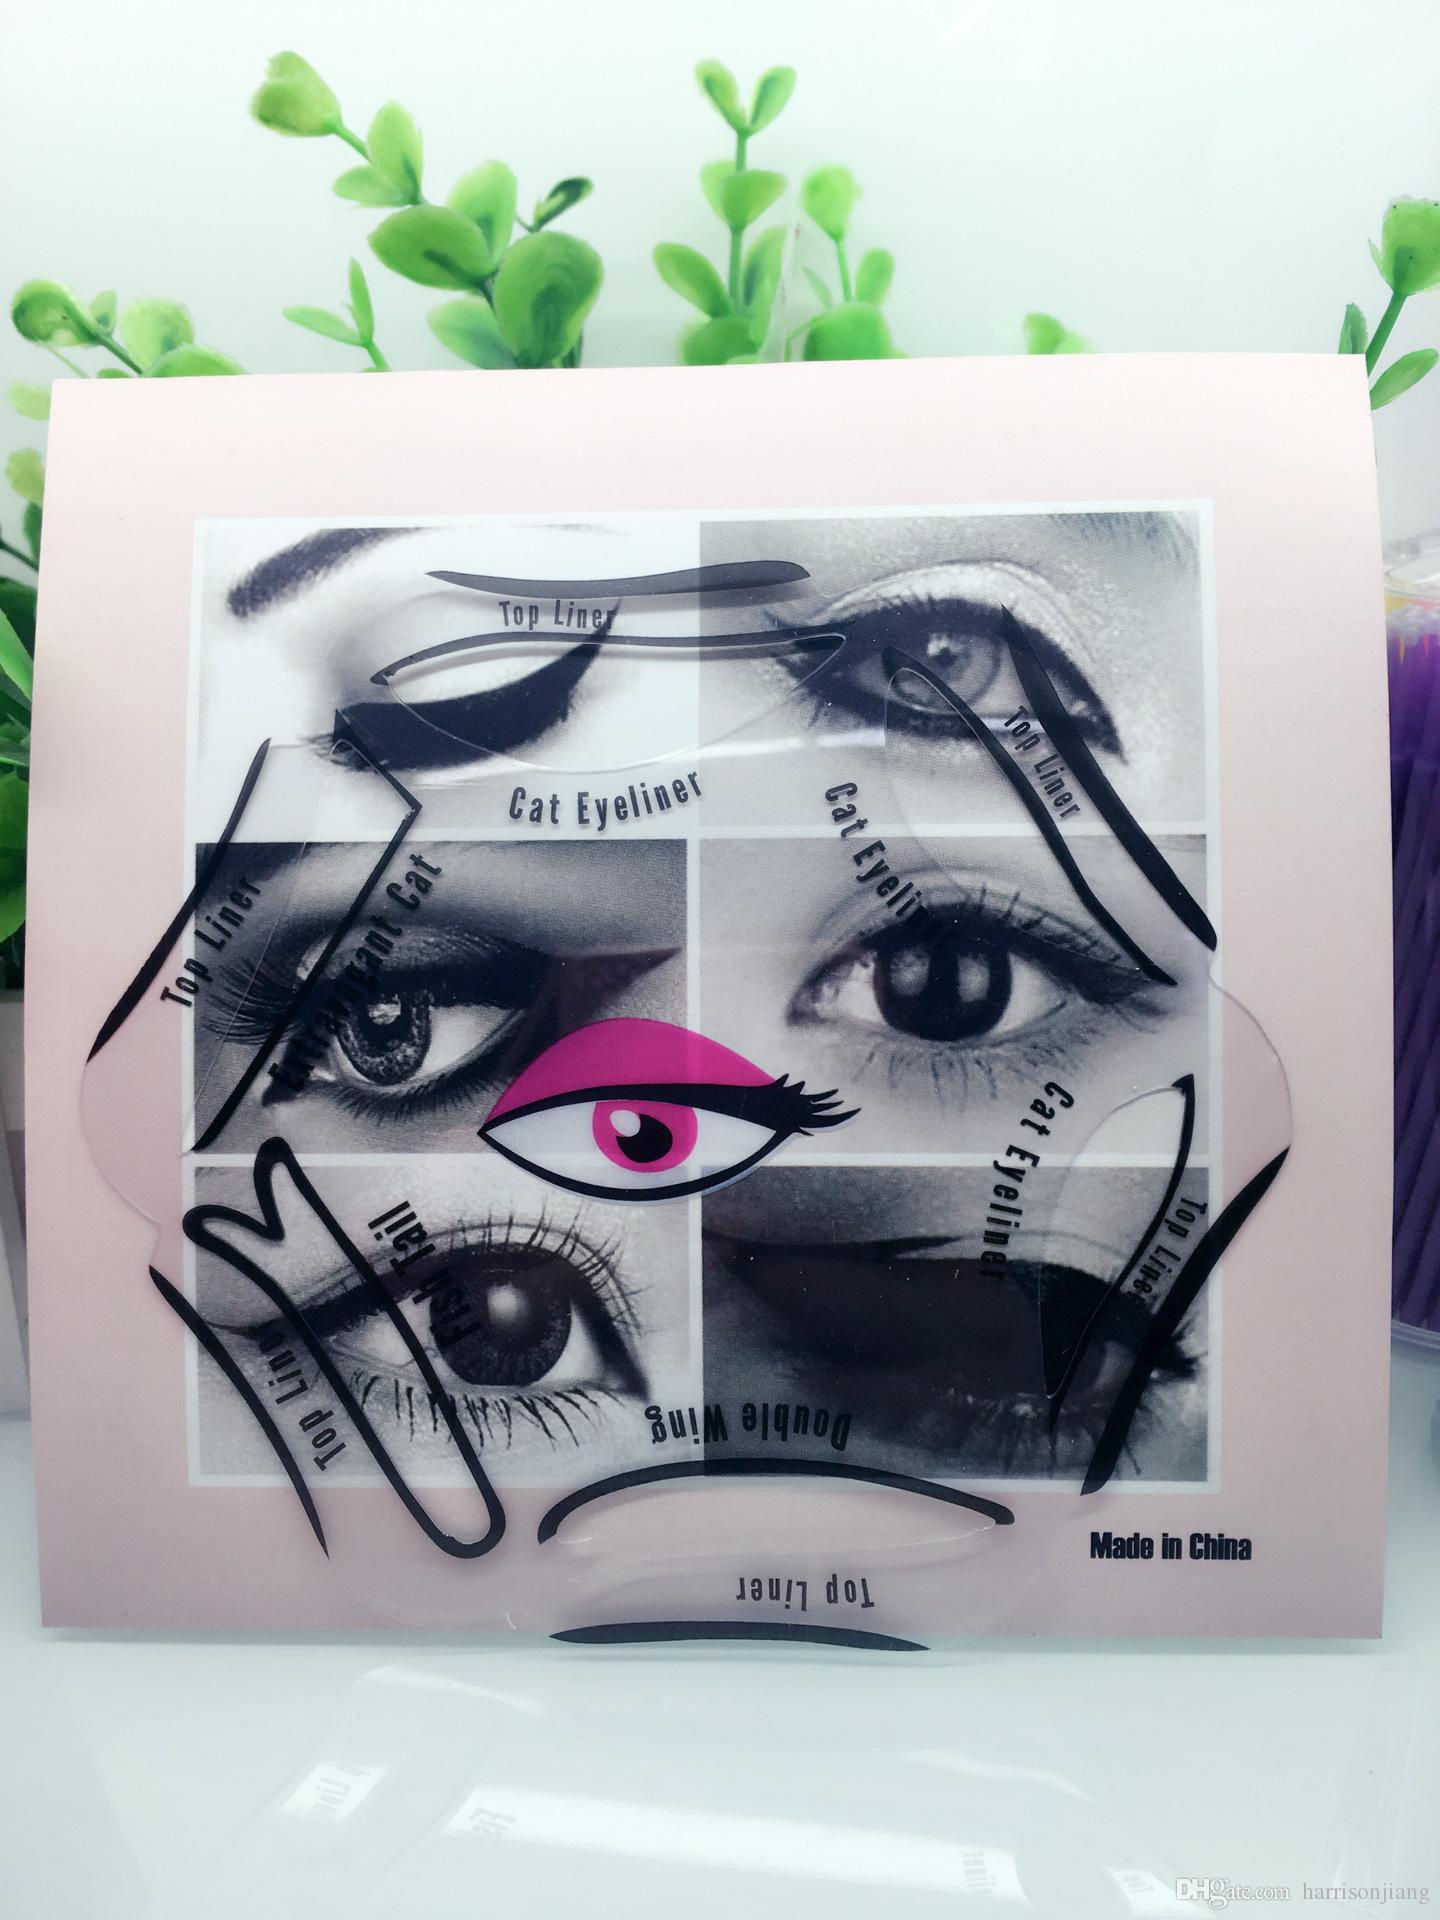 New 6 In 1 Cosmetic Eyeliner Stencils Charming Cat Eye and Smokey Eyes Drawing Guide Multi-use Eye Liner Template Tool Kit